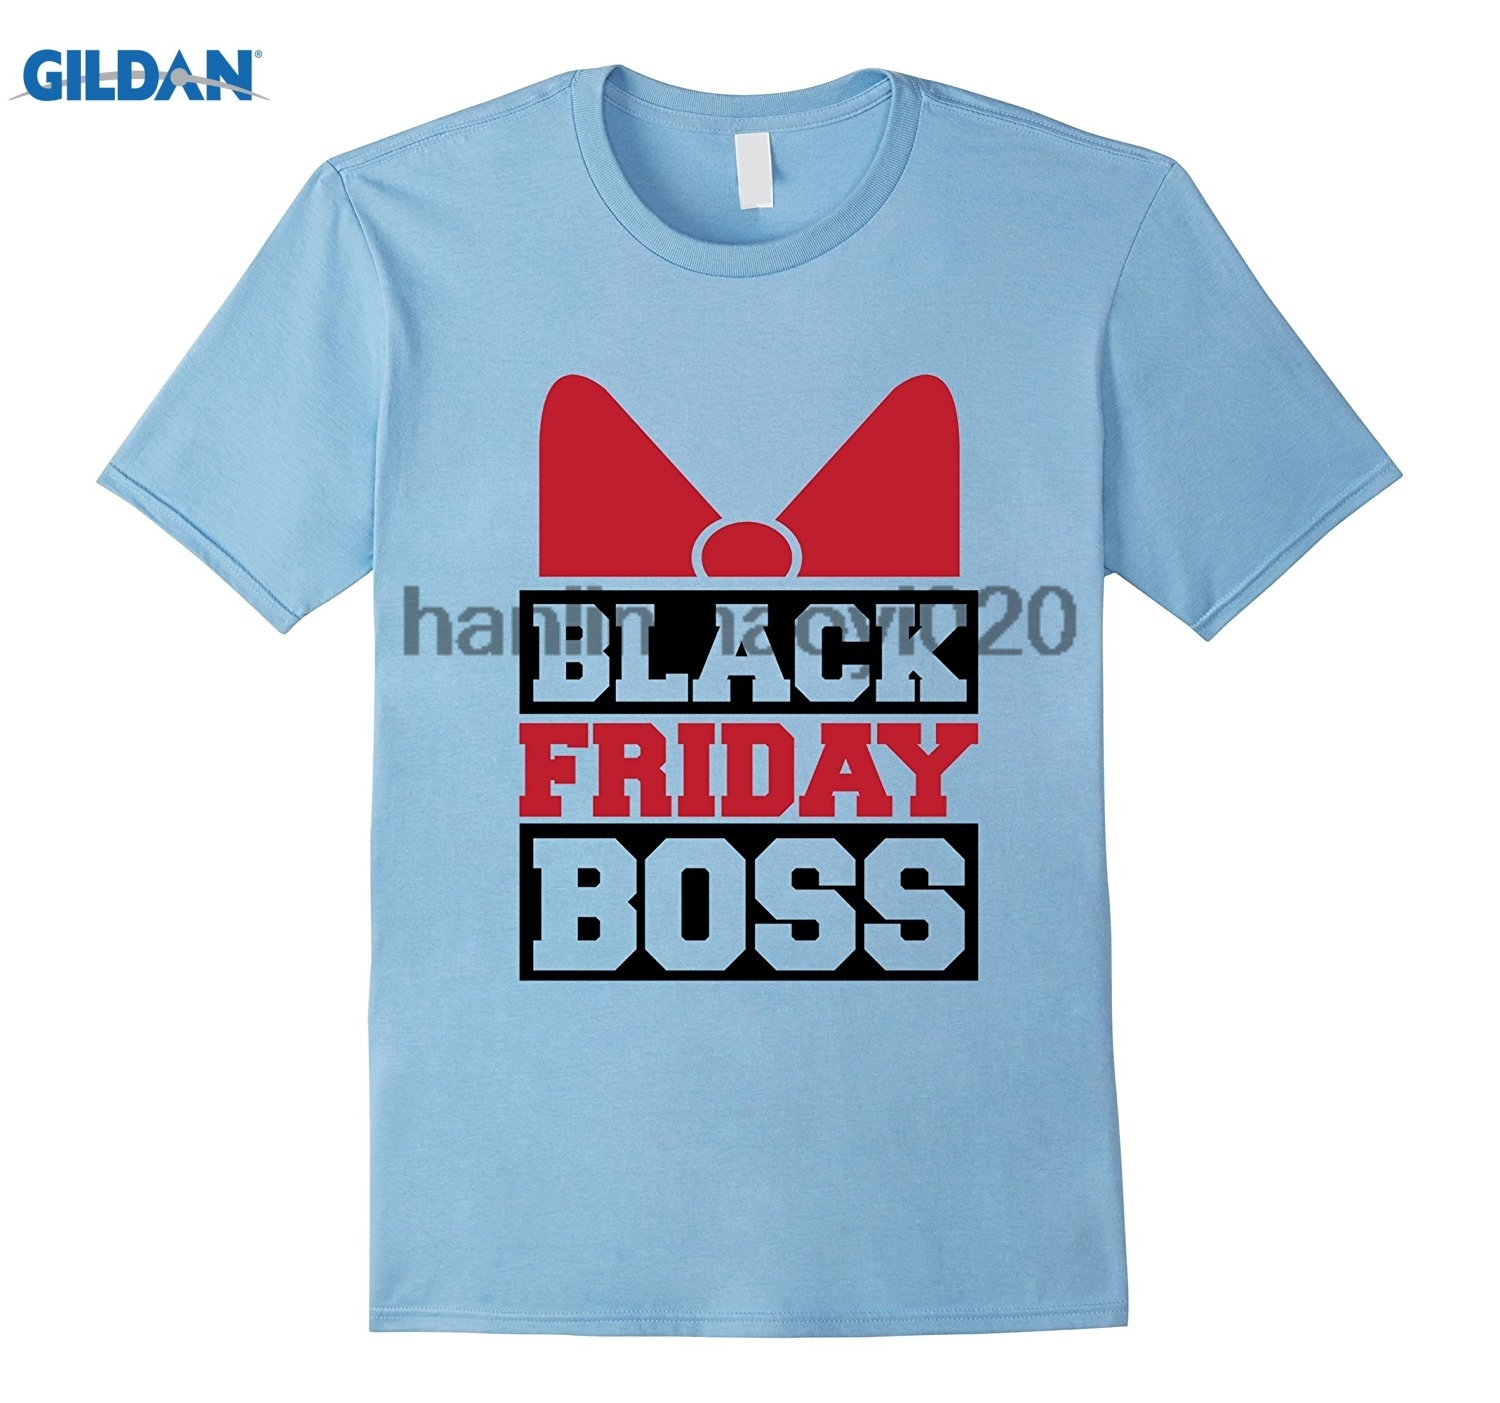 GILDAN Black Friday Boss Shopping T-Shirt